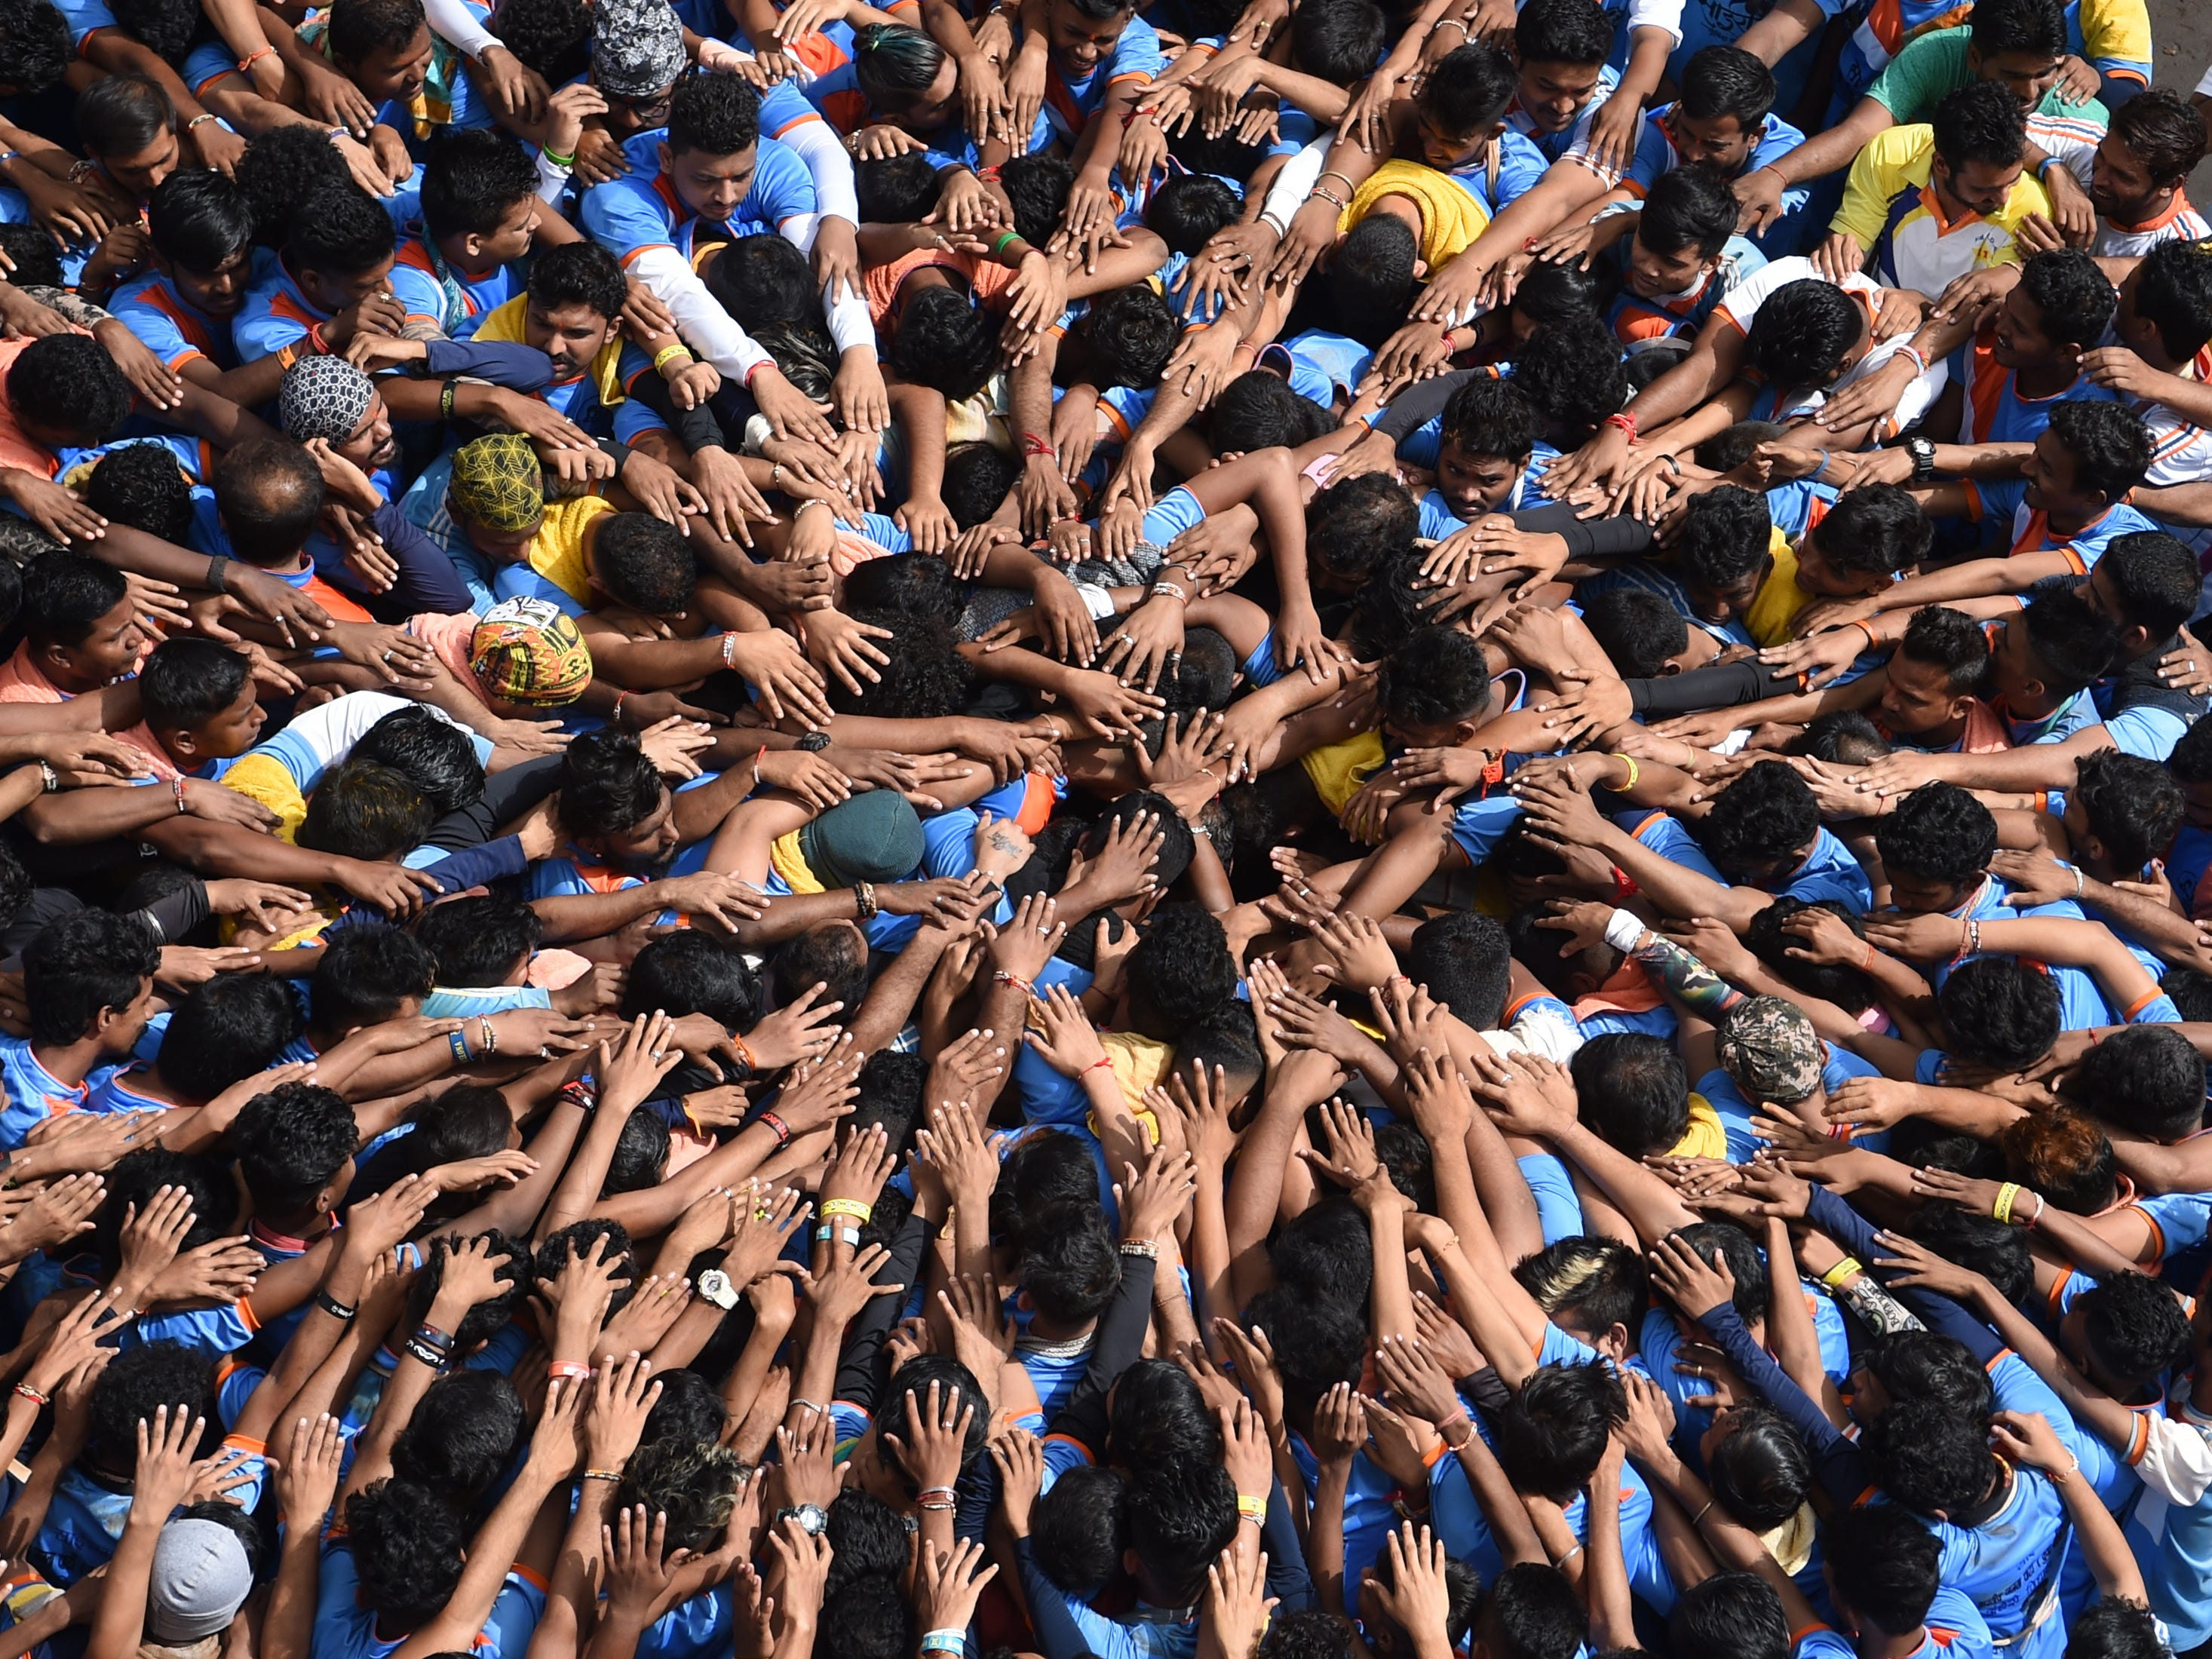 Indian Hindu devotees take a vow before forming a human pyramid in a bid to reach and break a dahi-handi (curd-pot) suspended in the air during celebrations for the Janmashtami festival, which marks the birth of Hindu God Lord Krishna, in Mumbai on September 3, 2018.